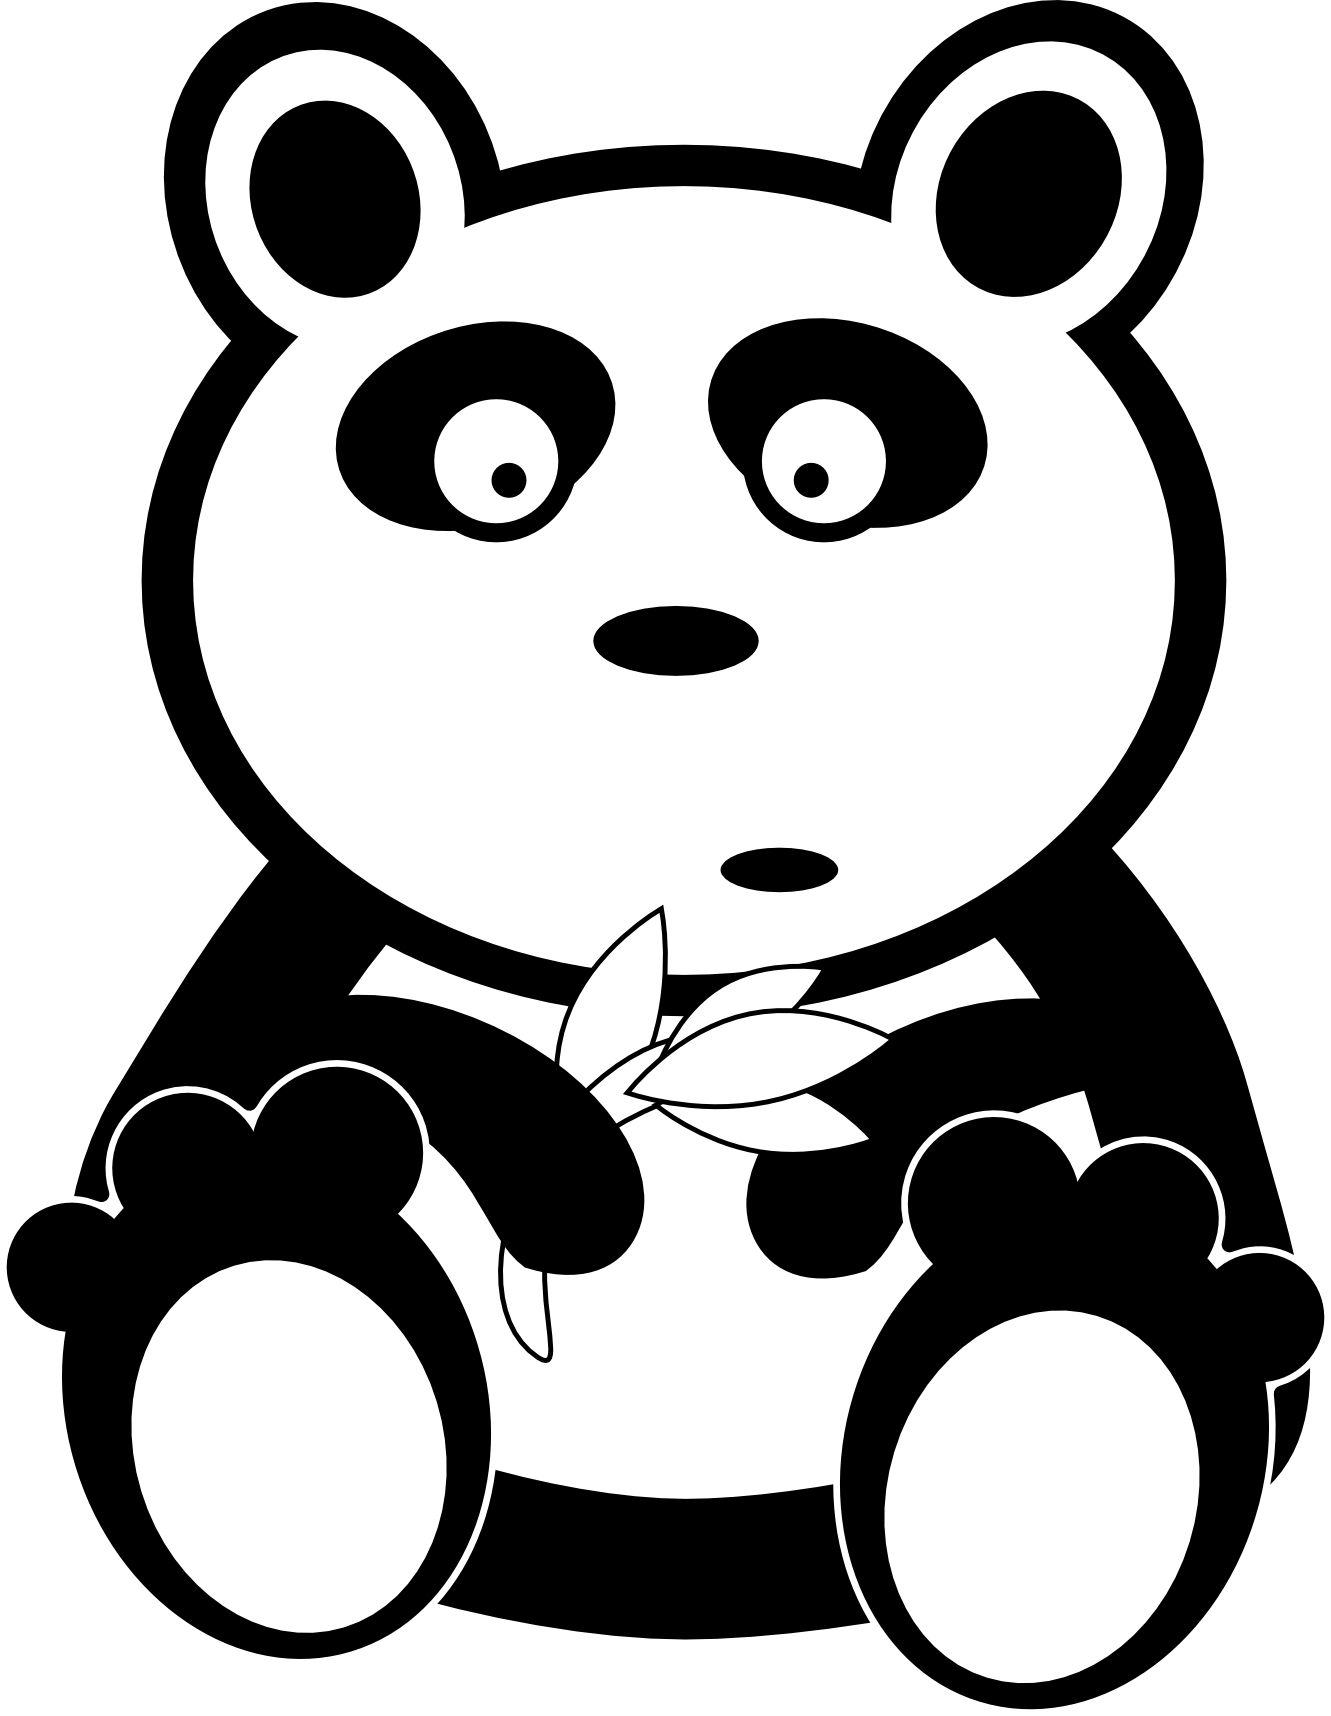 Clipart Animals | Clipart Panda - Free Clipart Images